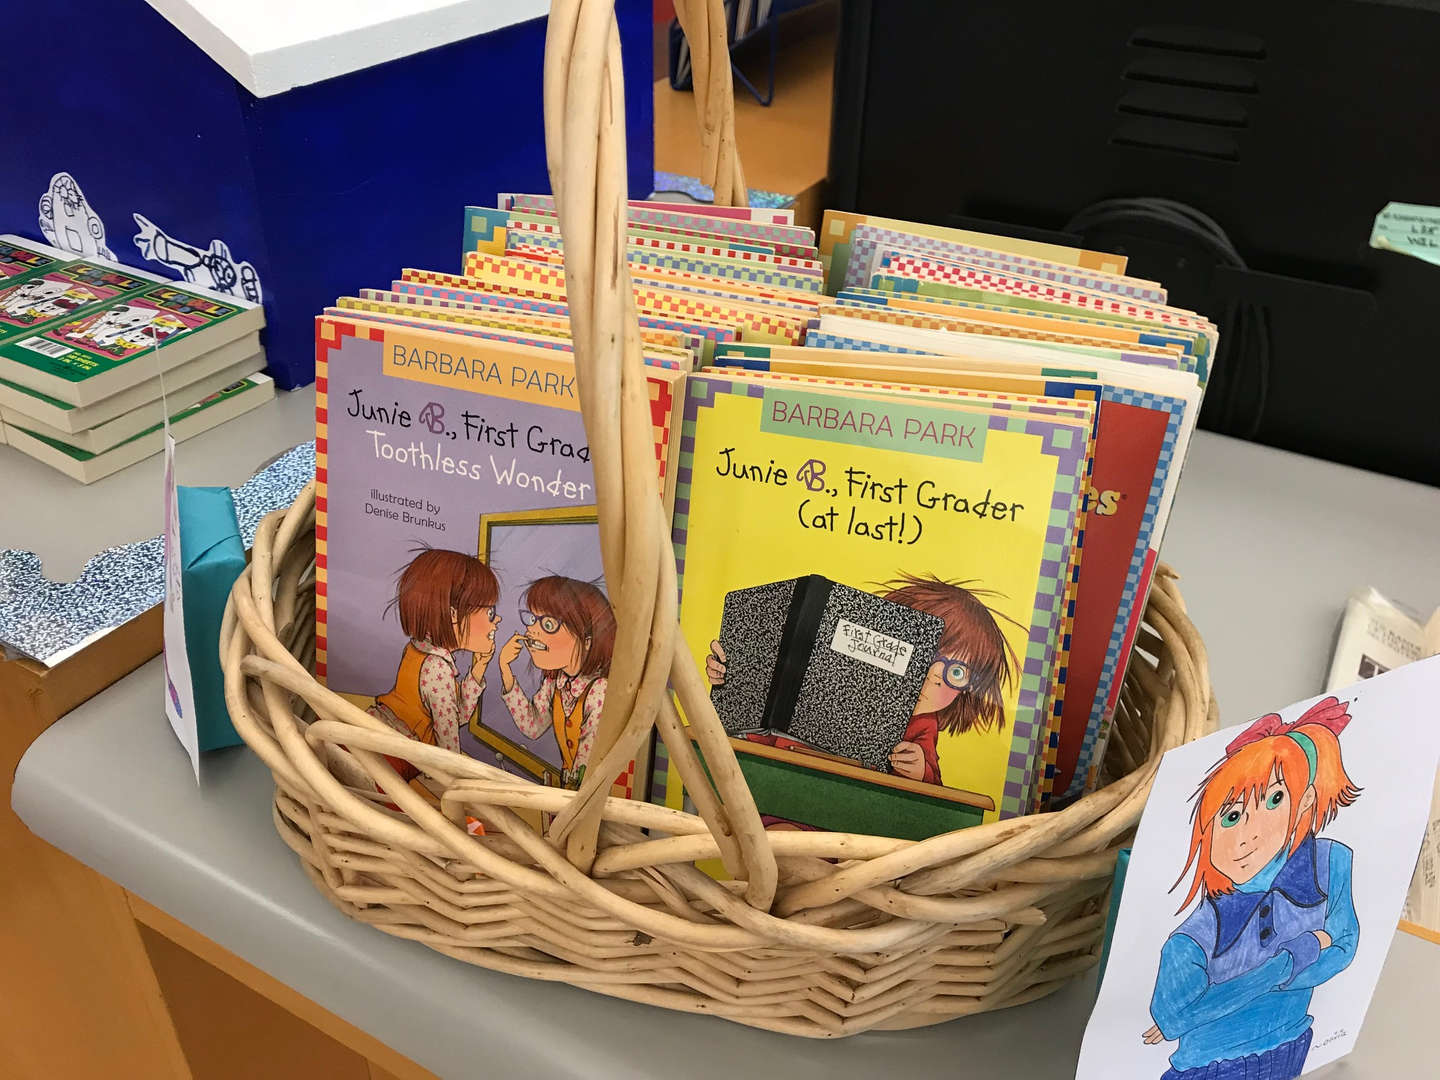 A paperback series of books in a basket